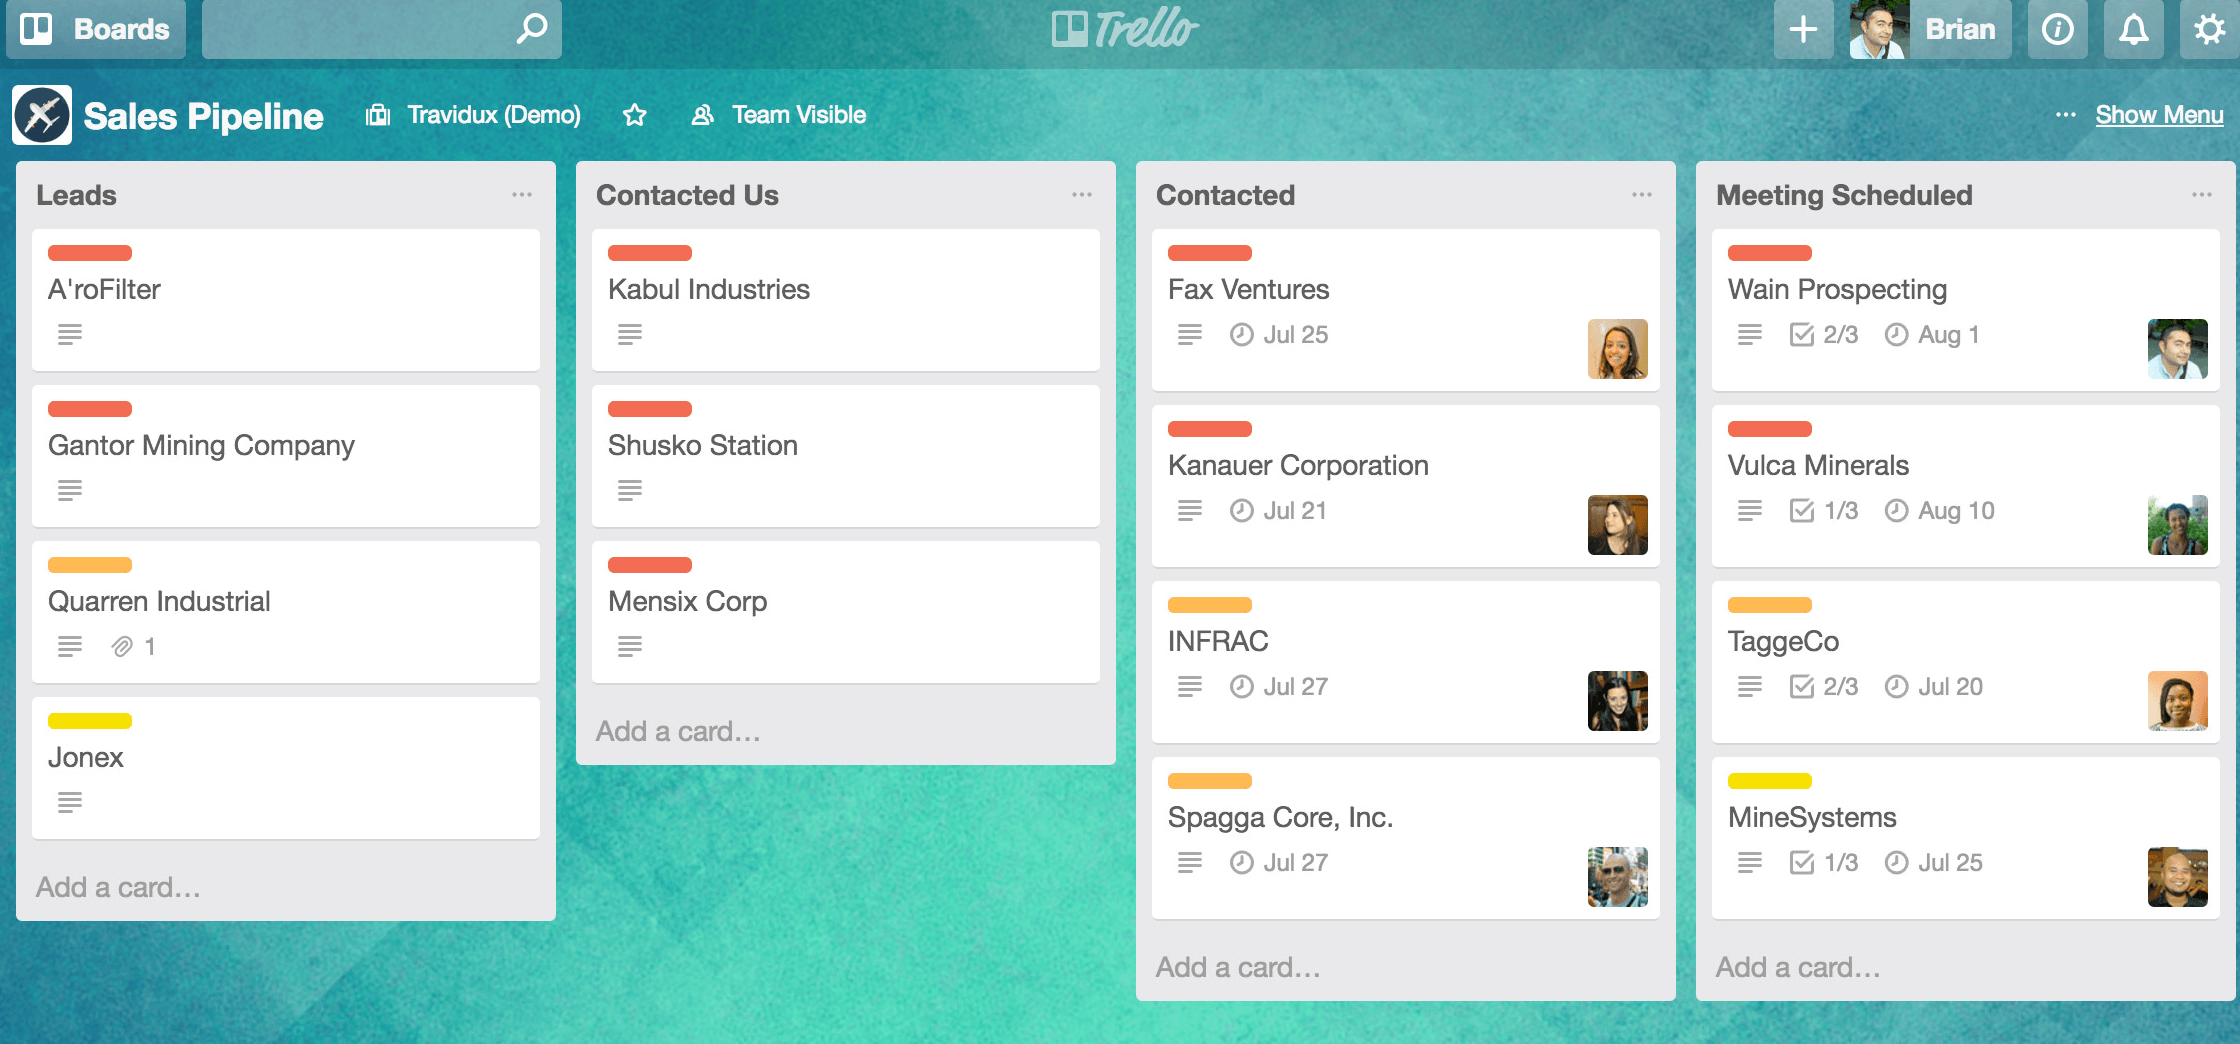 Trello board sales pipeline interface